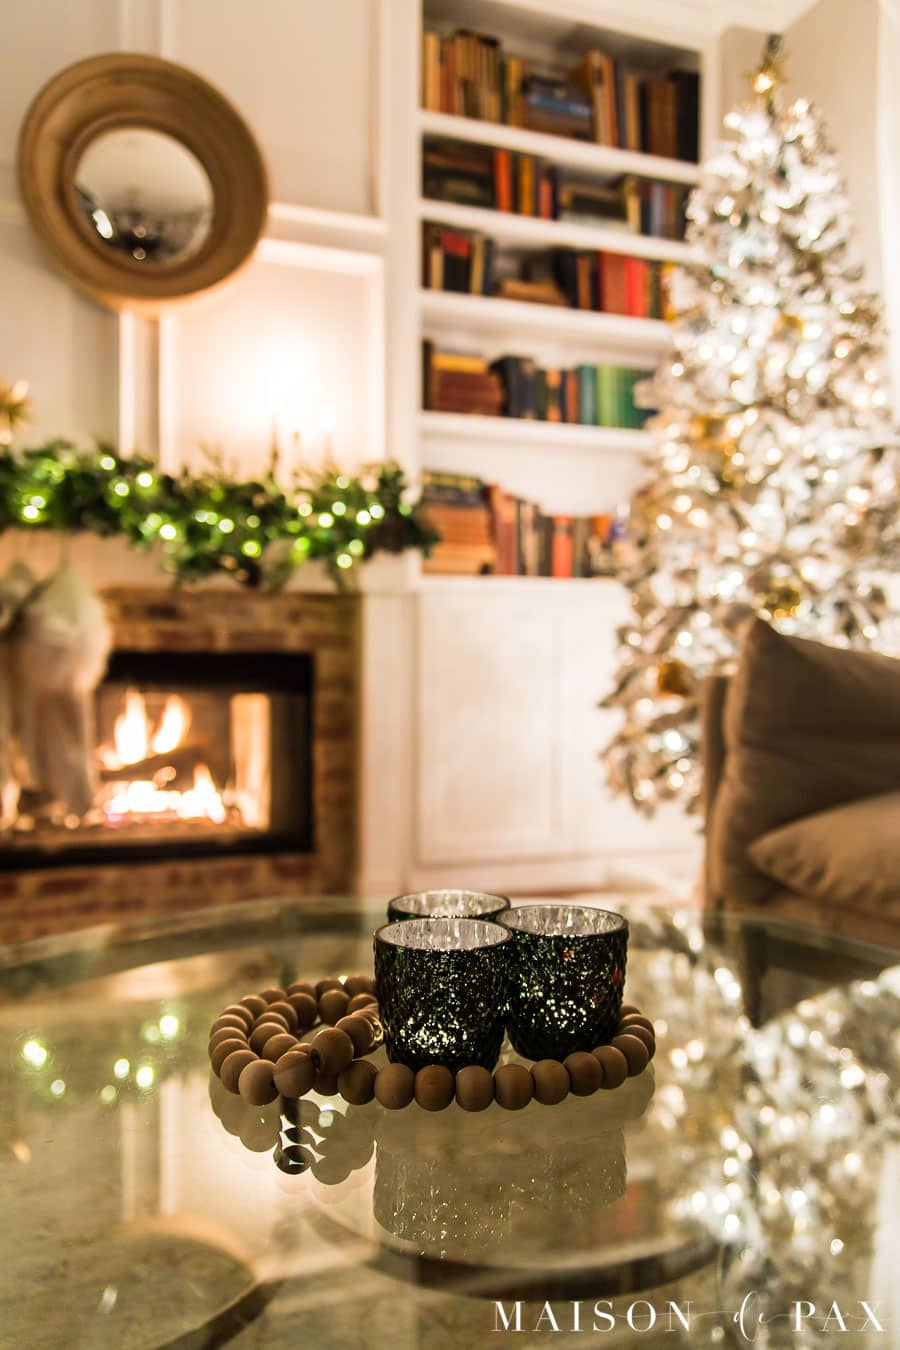 flocked christmas tree and fireplace all lit up at night   Maison de Pax